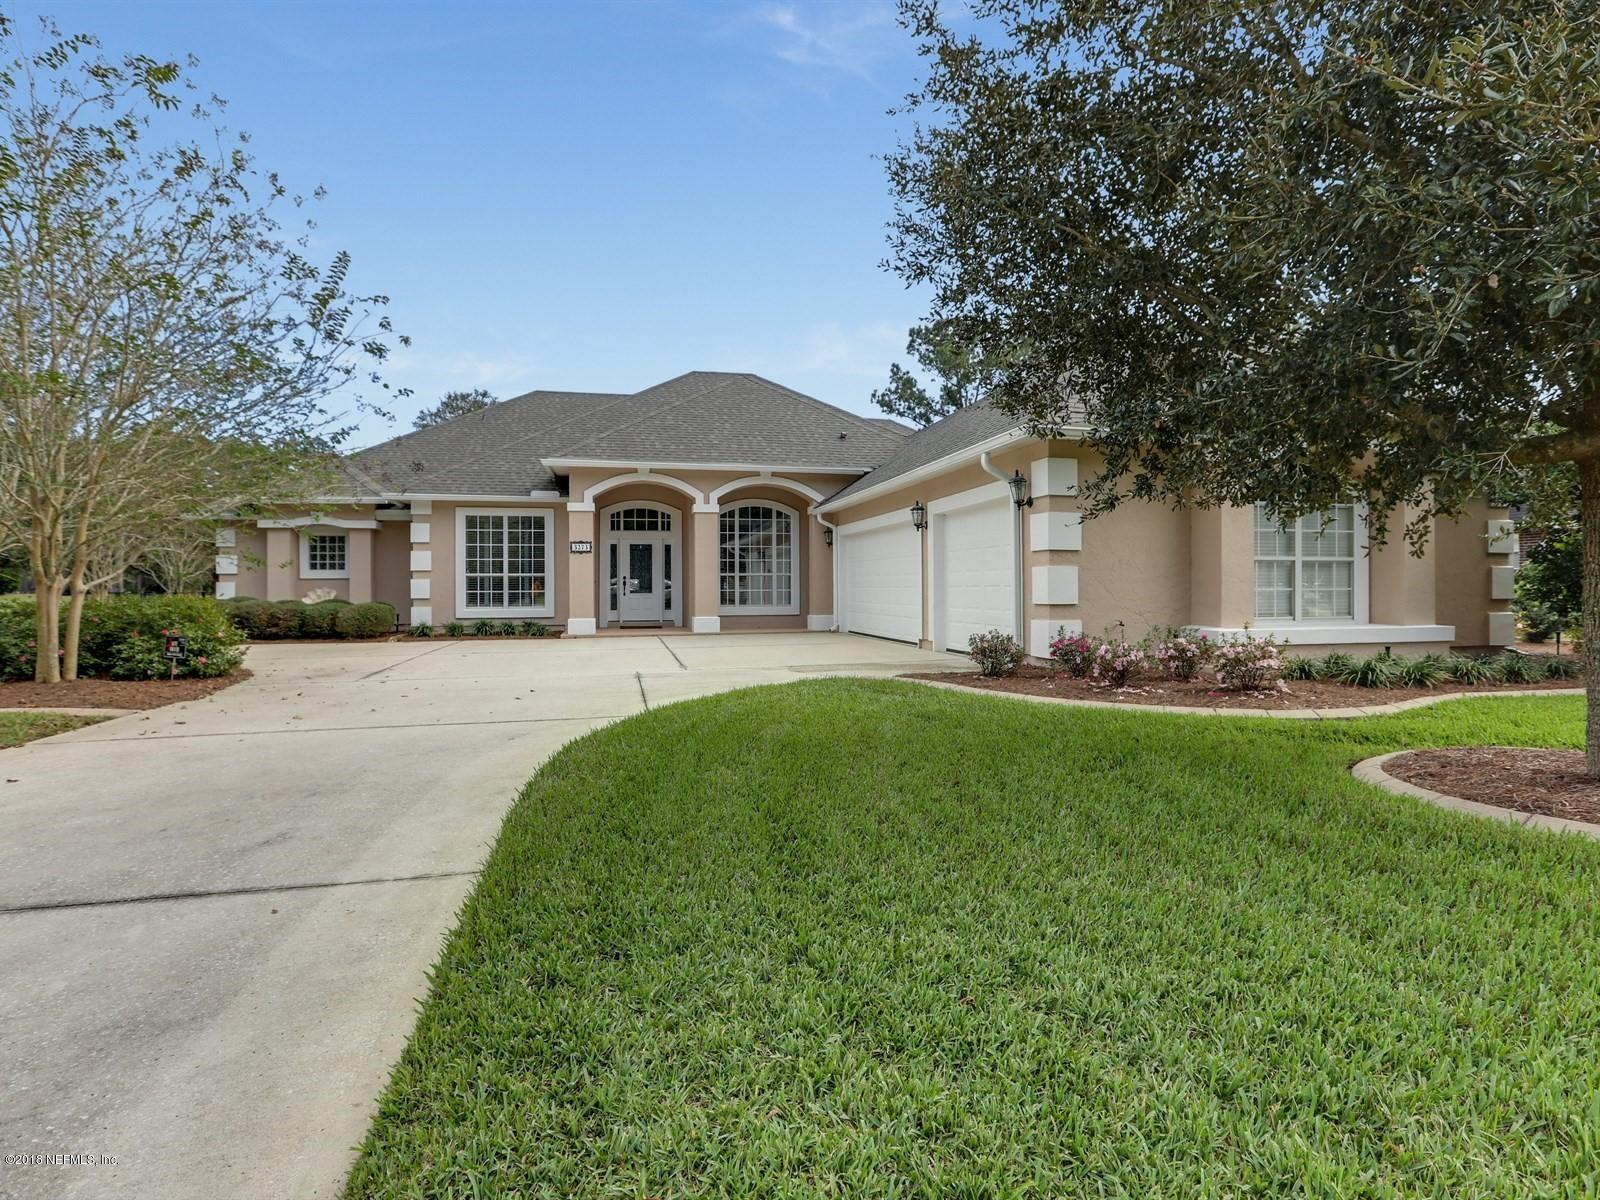 3273  SEQUOYAH CIR, Saint Johns in ST. JOHNS County, FL 32259 Home for Sale